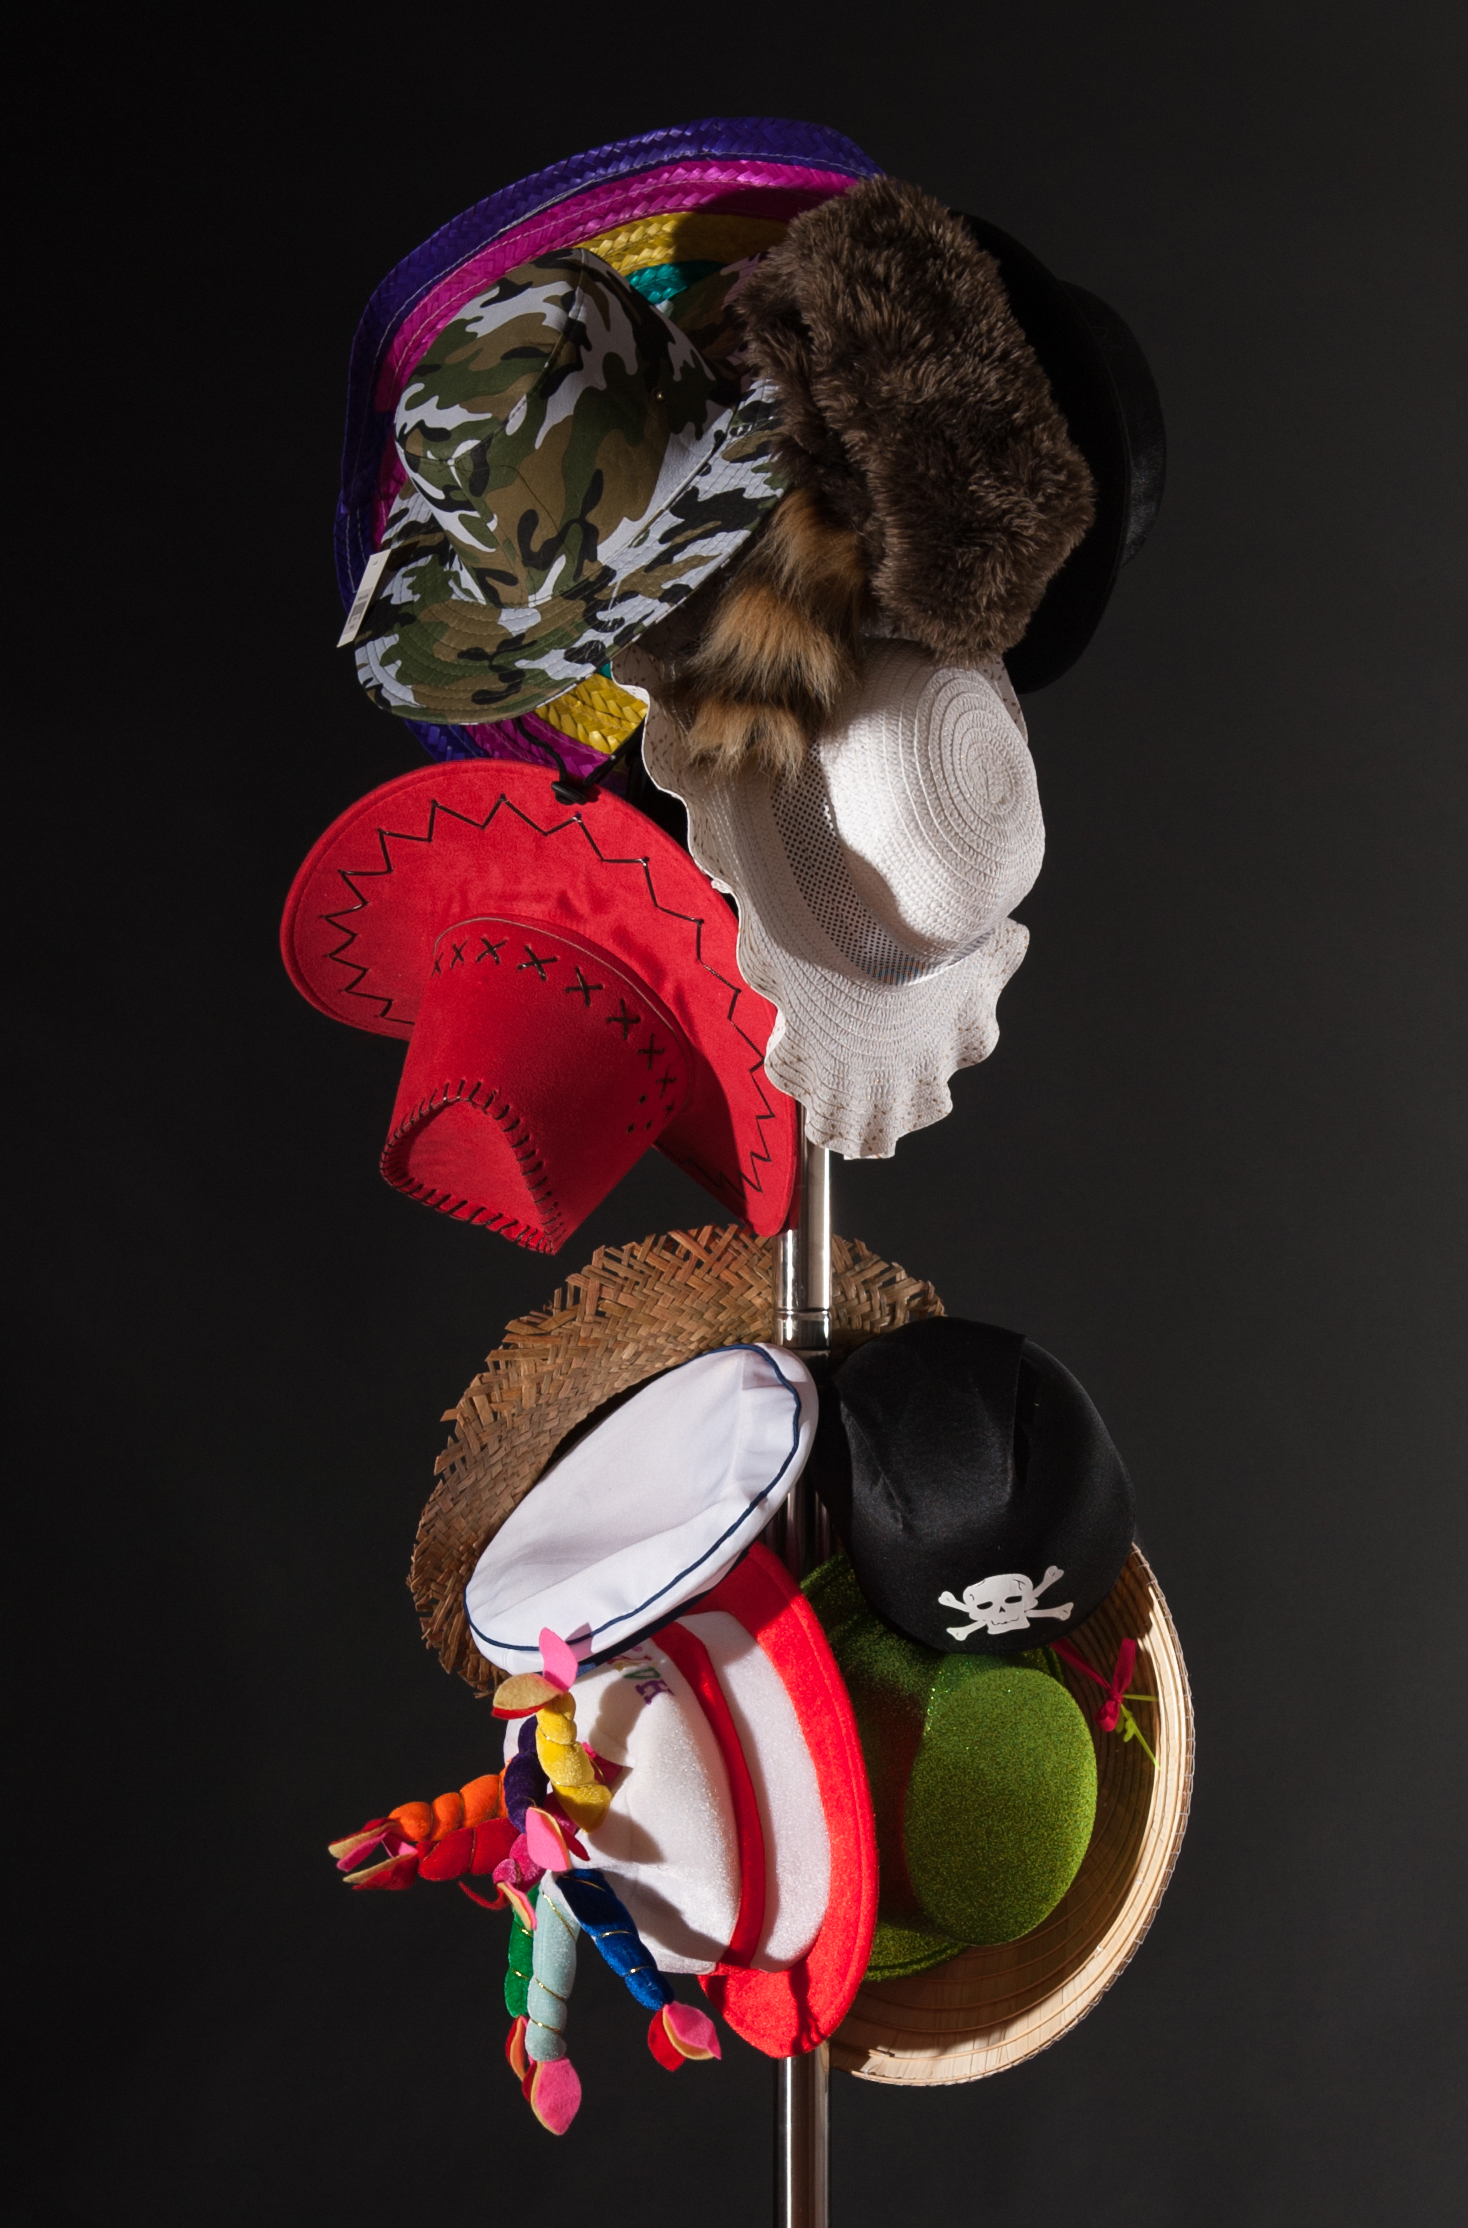 Hat Stand (Waiting for Godot)  2014  Stainless steel hat stand, dress-up hats  Approx. 190 (h) x 50 (w) x 50cm (d)